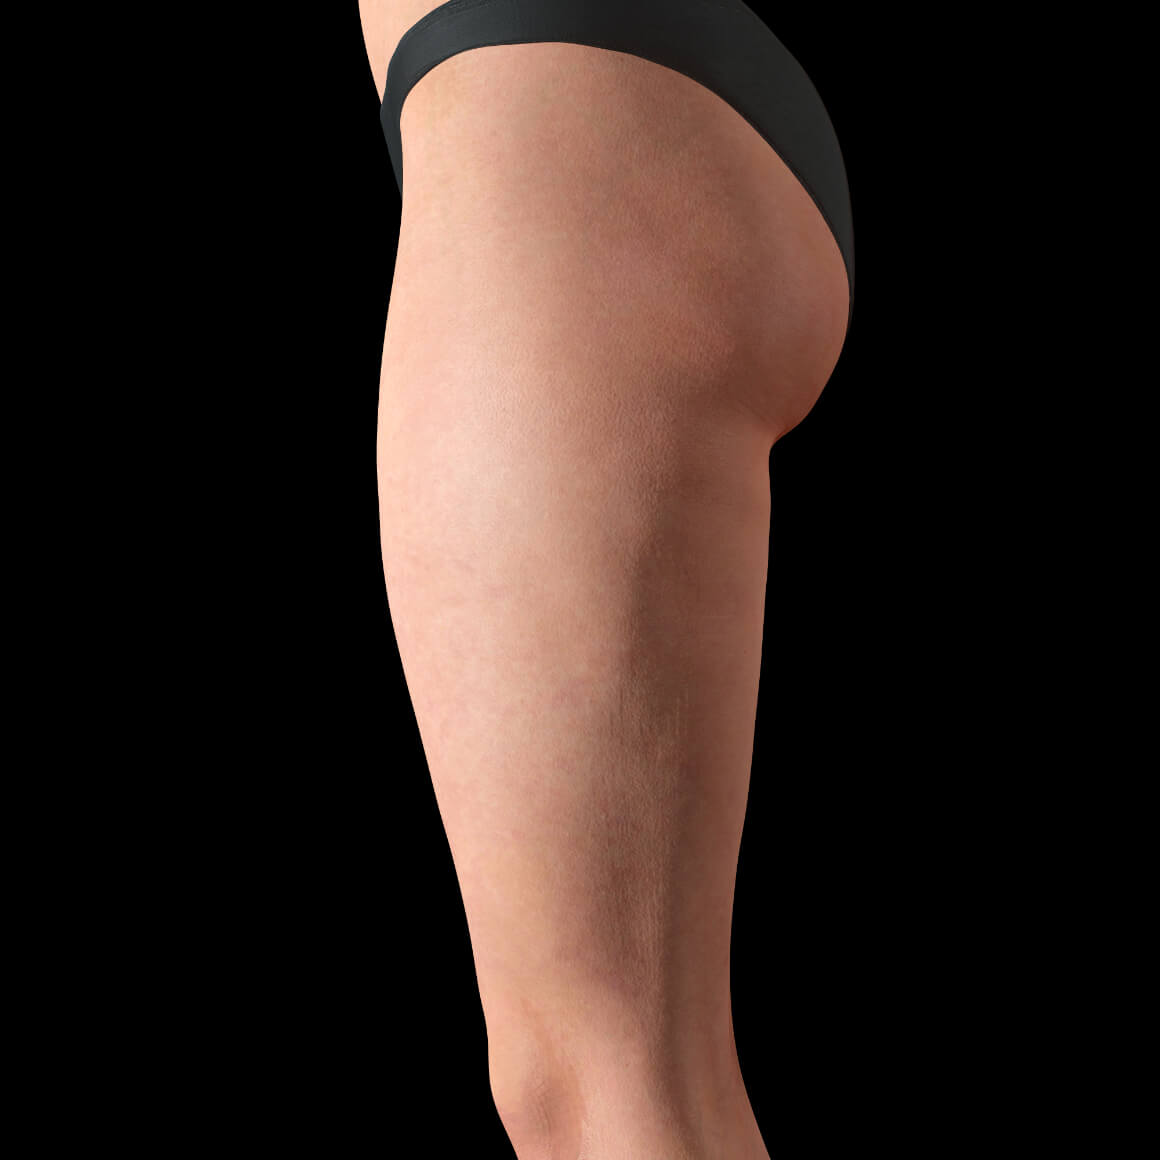 Female patient at Clinique Chloé positioned sideways after a Profound RF cellulite treatment on her thighs